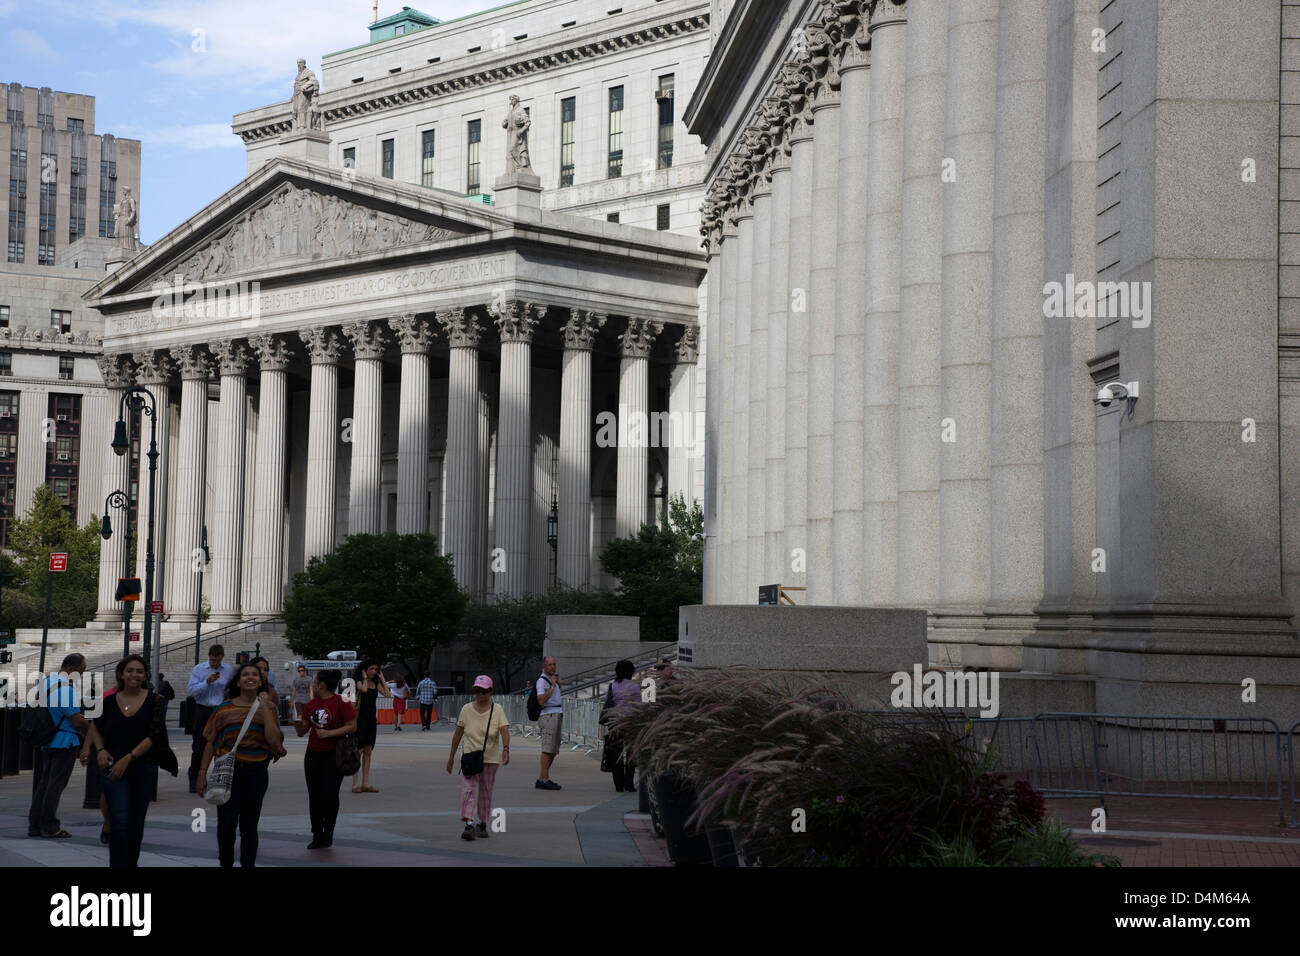 The Thurgood Marshall United States Courthouse at 40 Centre Street on Foley Square, New York - Stock Image